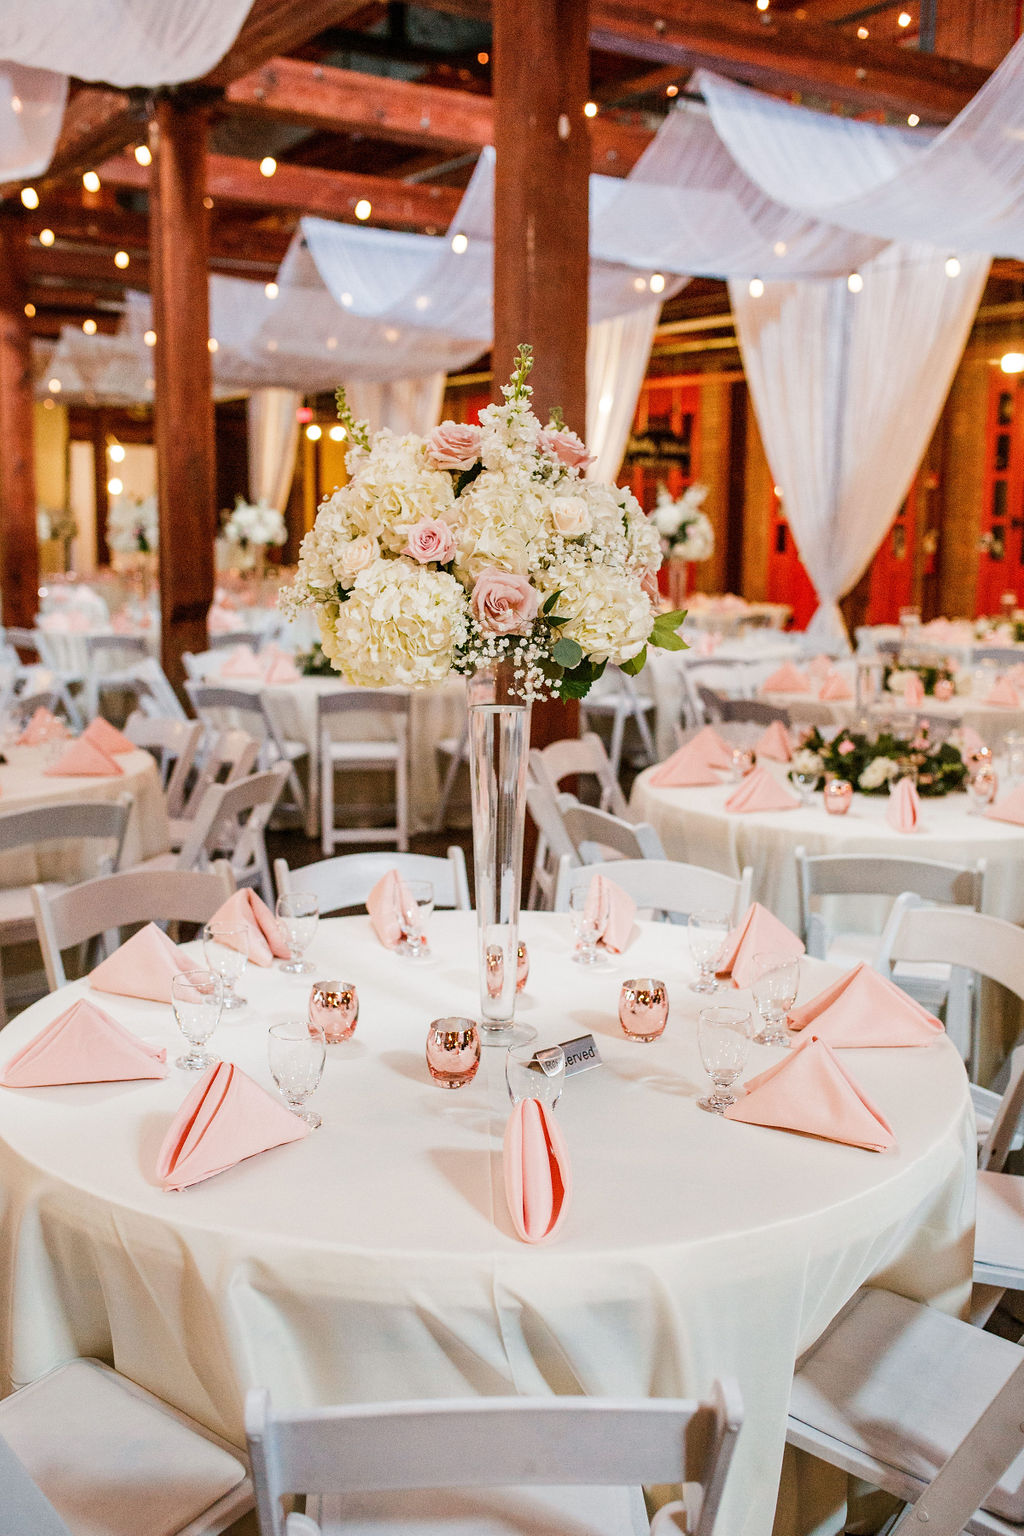 Tall pink and white floral wedding centerpieces: Wedding at The Mill captured by John Myers Photography featured on Nashville Bride Guide